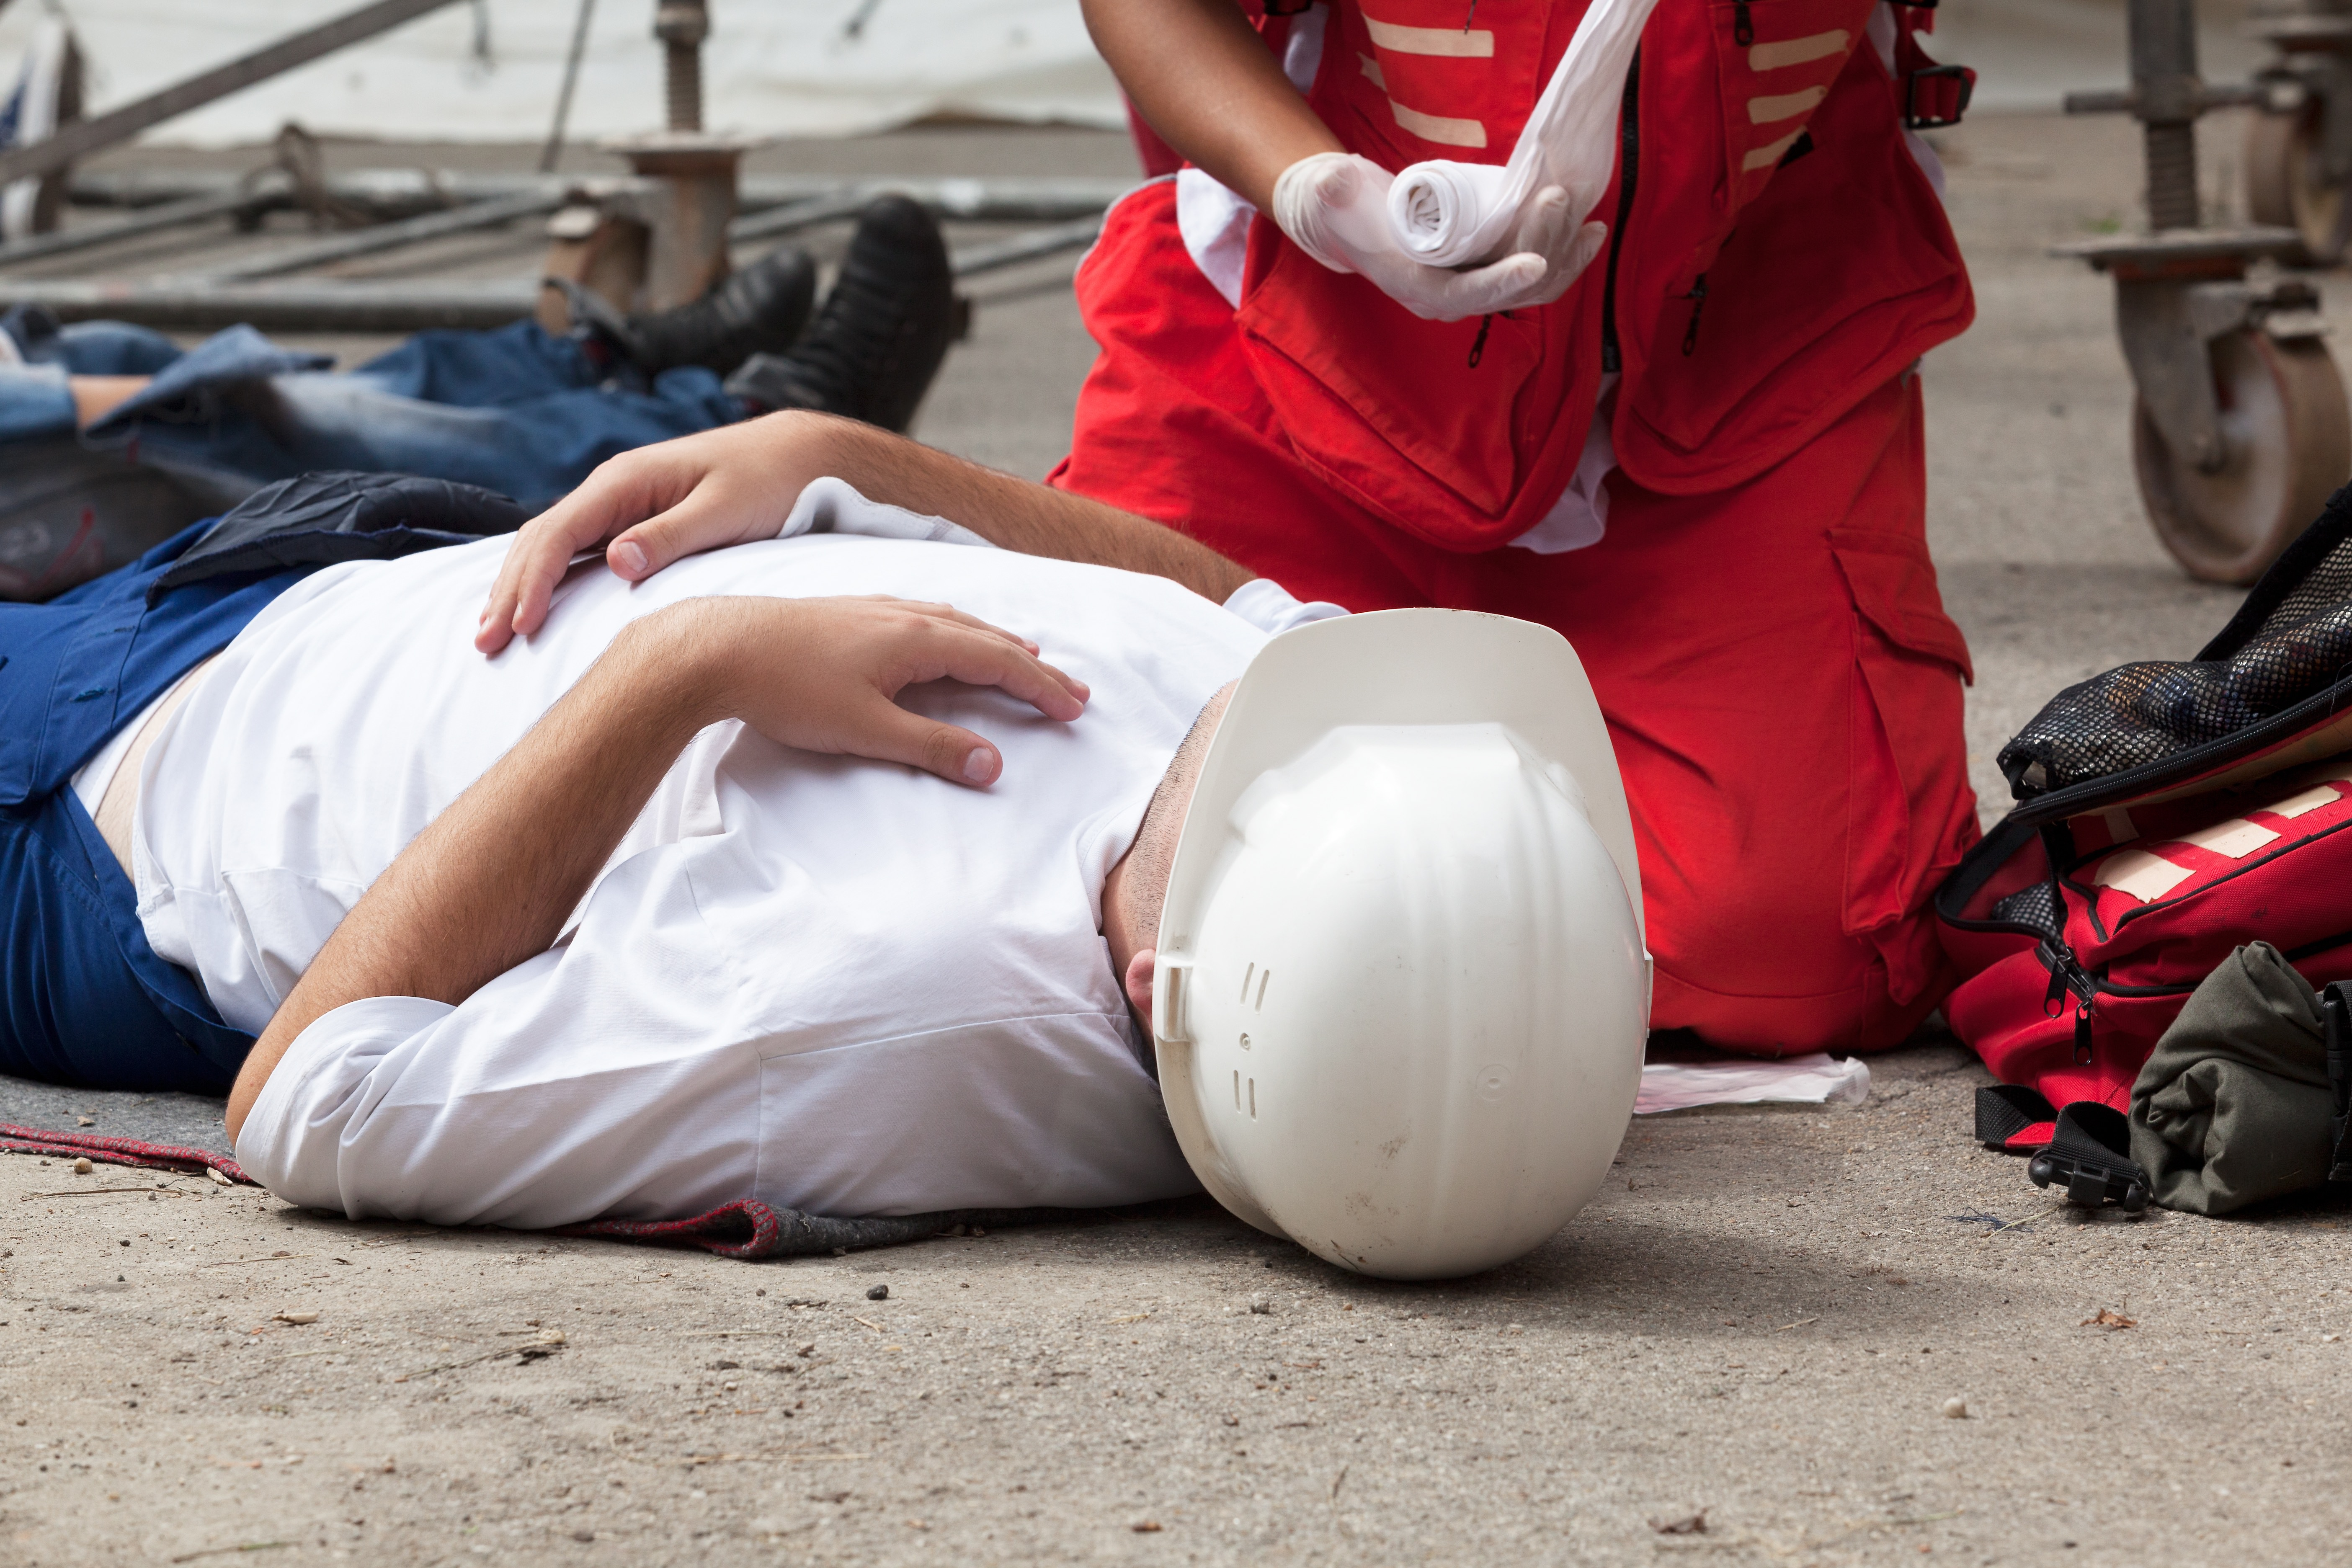 Worker lying on the ground while a First Aid responder kneels next to him unrolling gauze